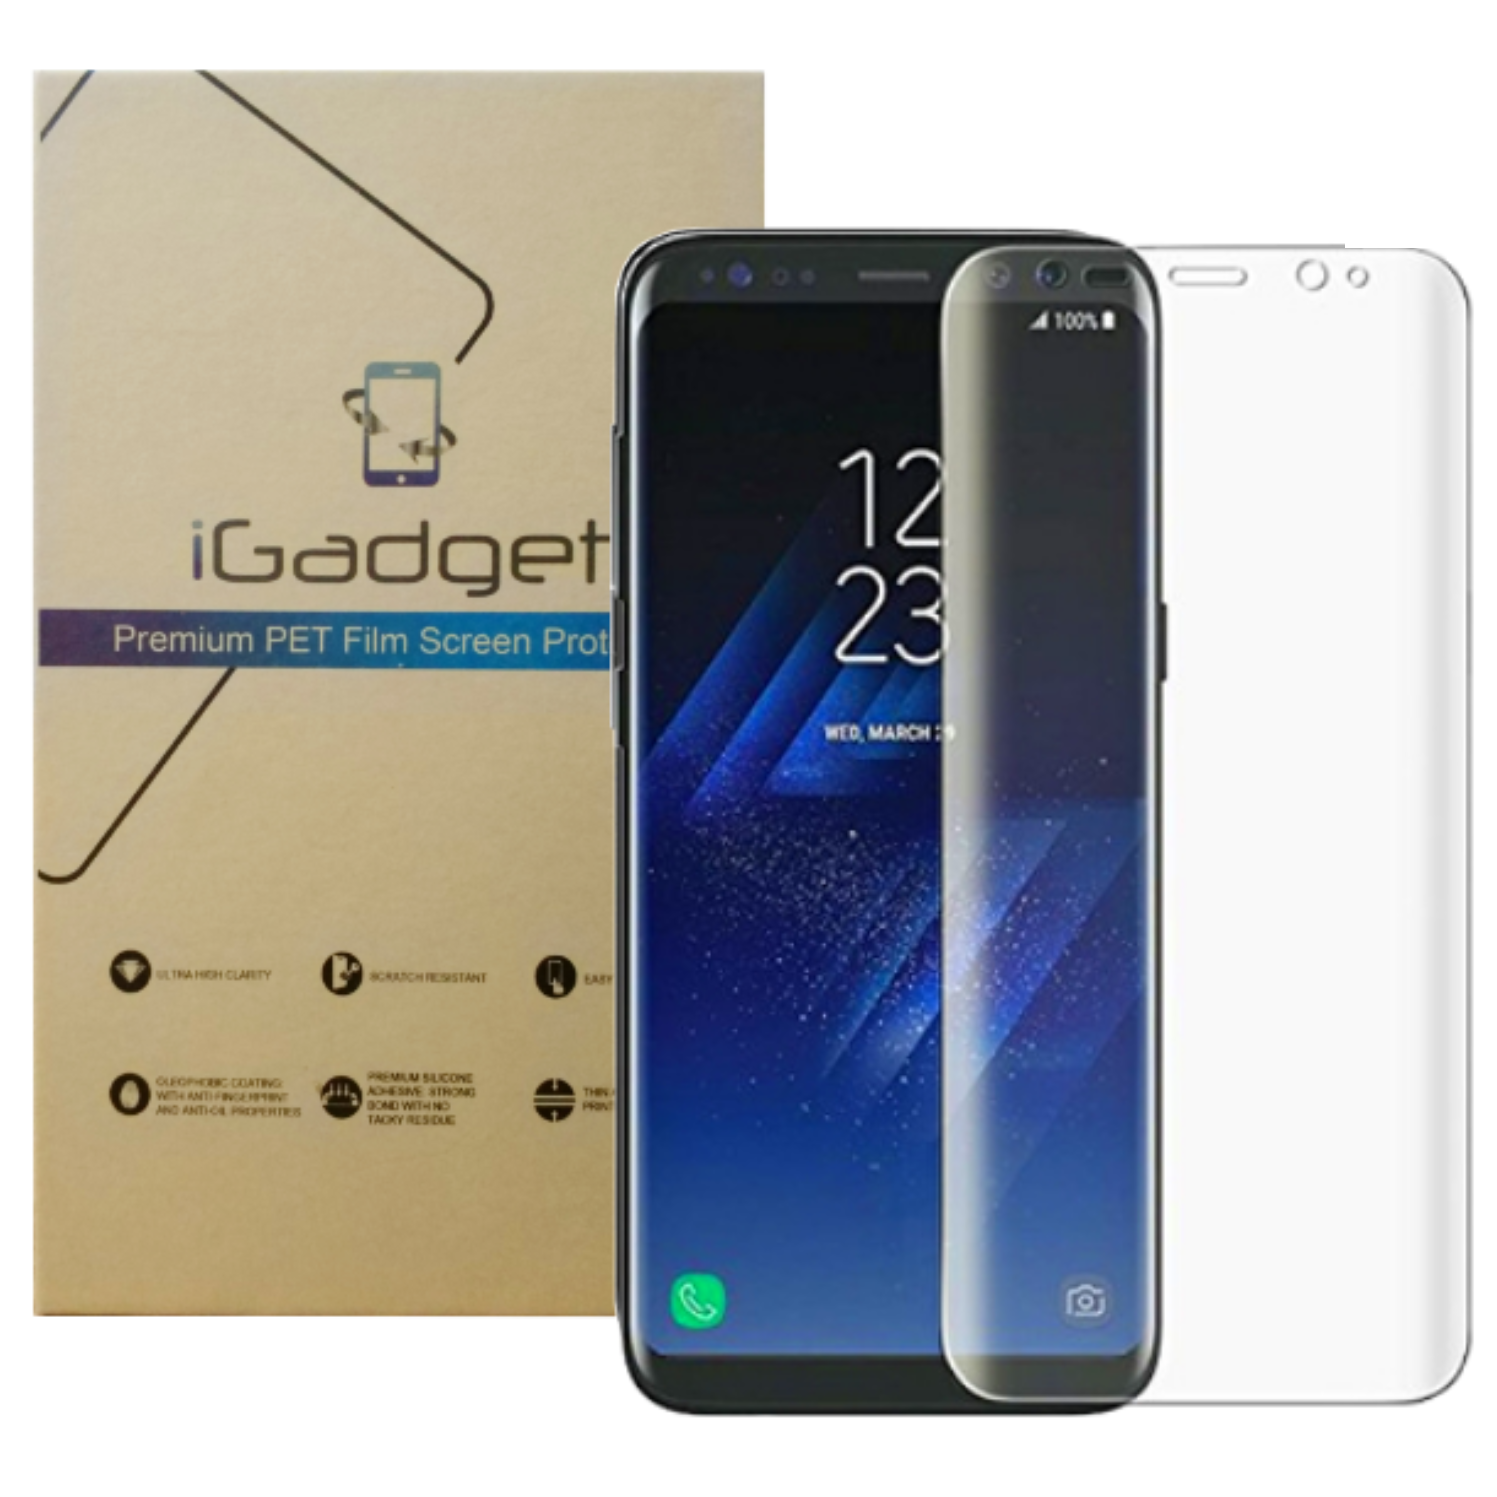 Samsung Galaxy S8 PET Film Screen Protector.